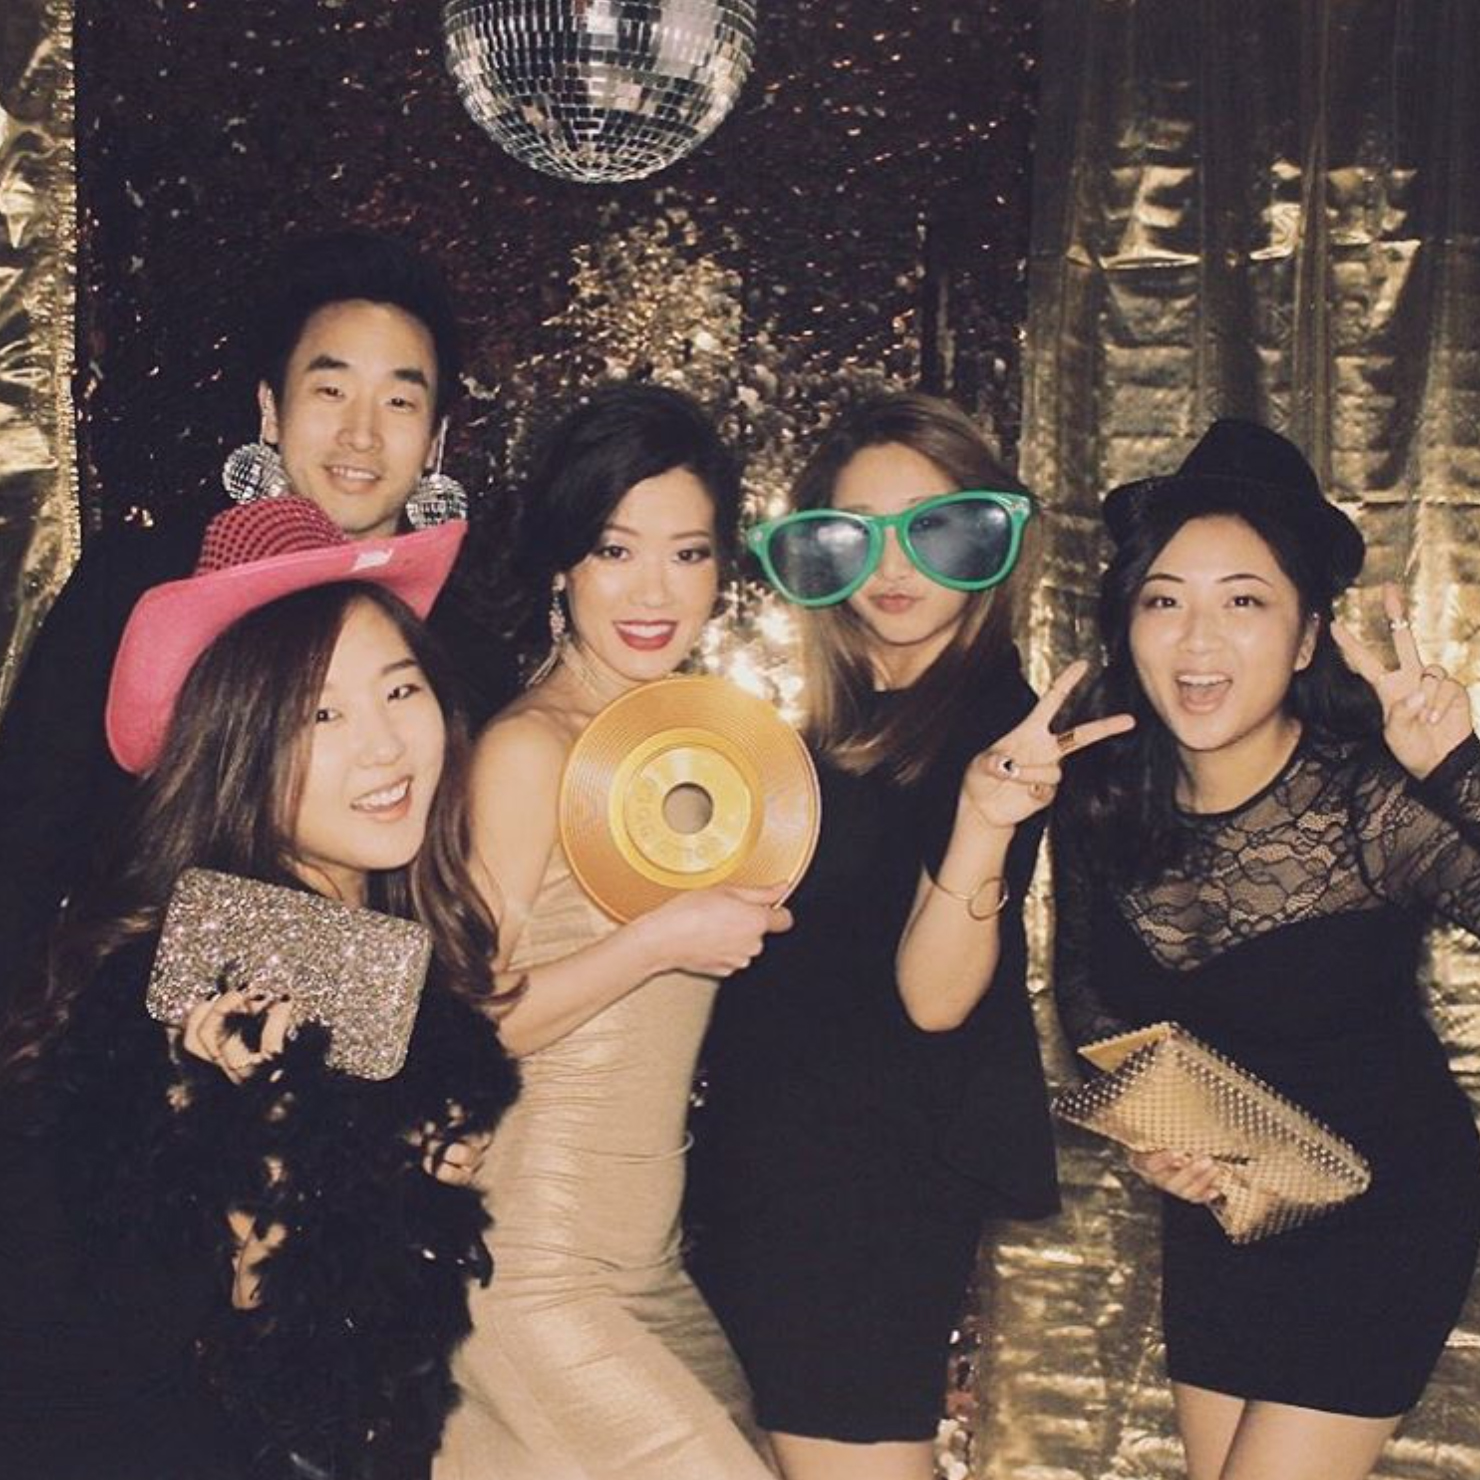 Party Goers Pose With Groovy Props and Disco Ball